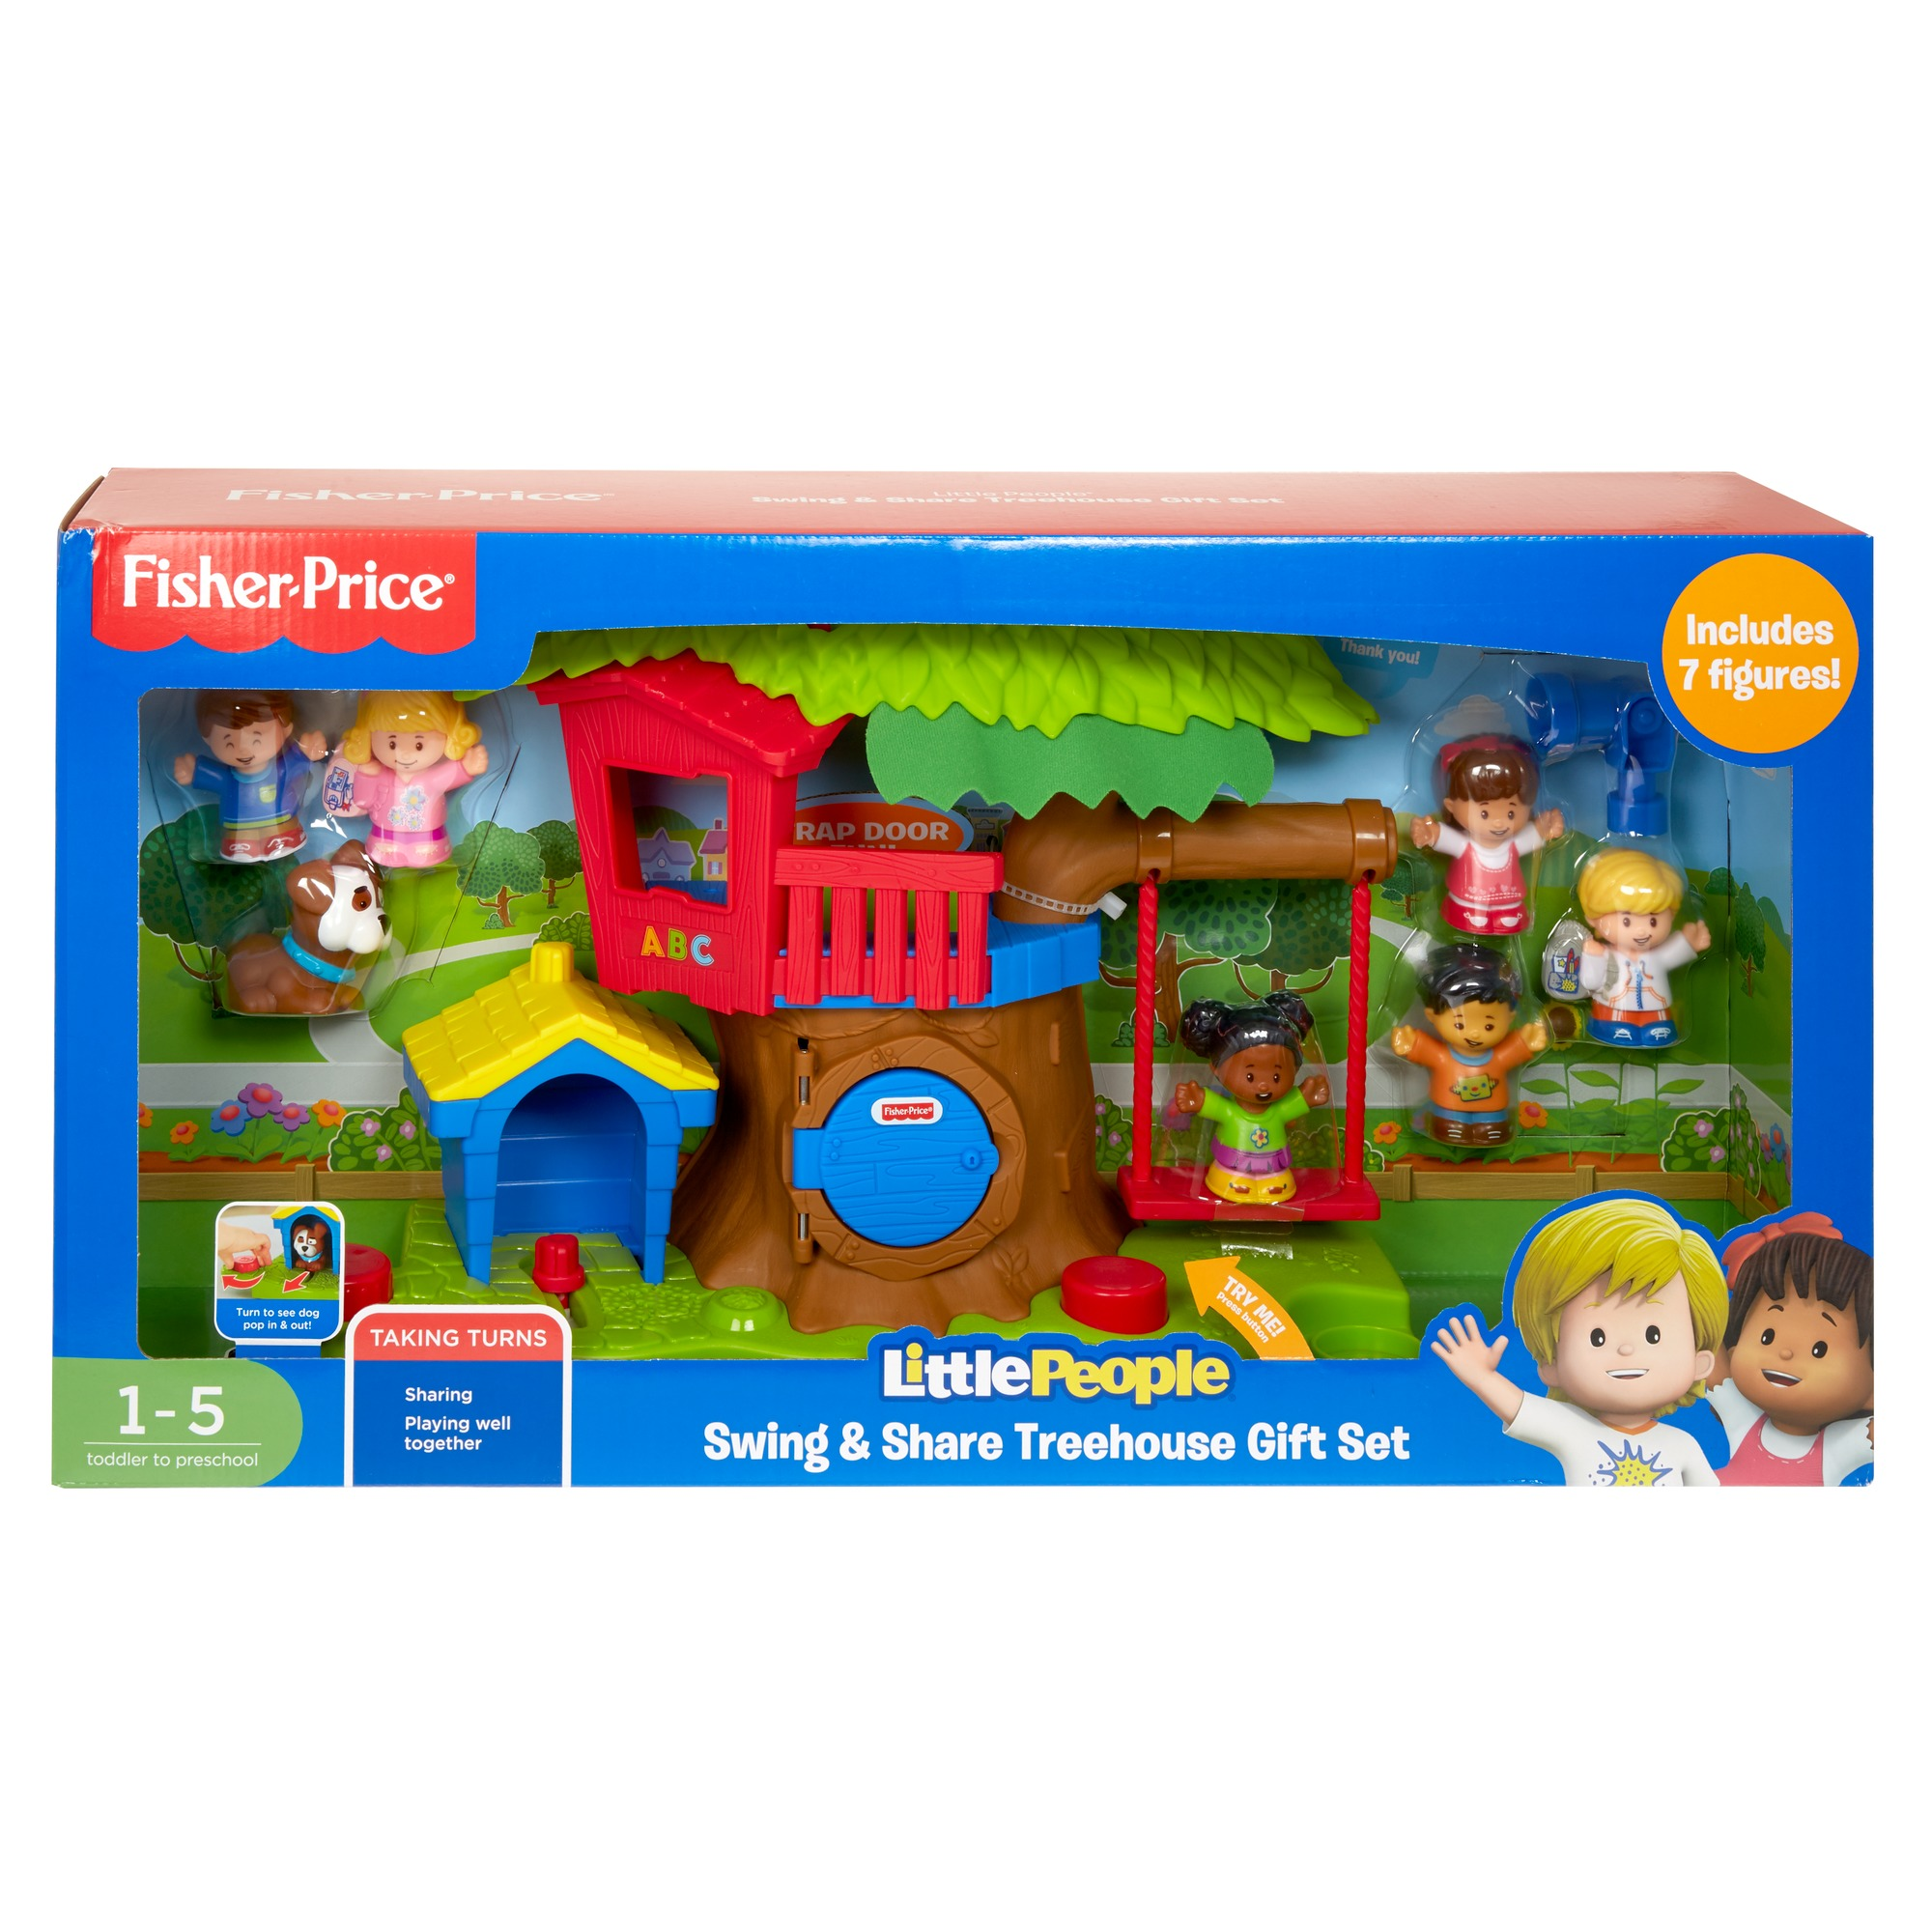 Little People Swing & Share Treehouse Gift Set by Fisher-Price